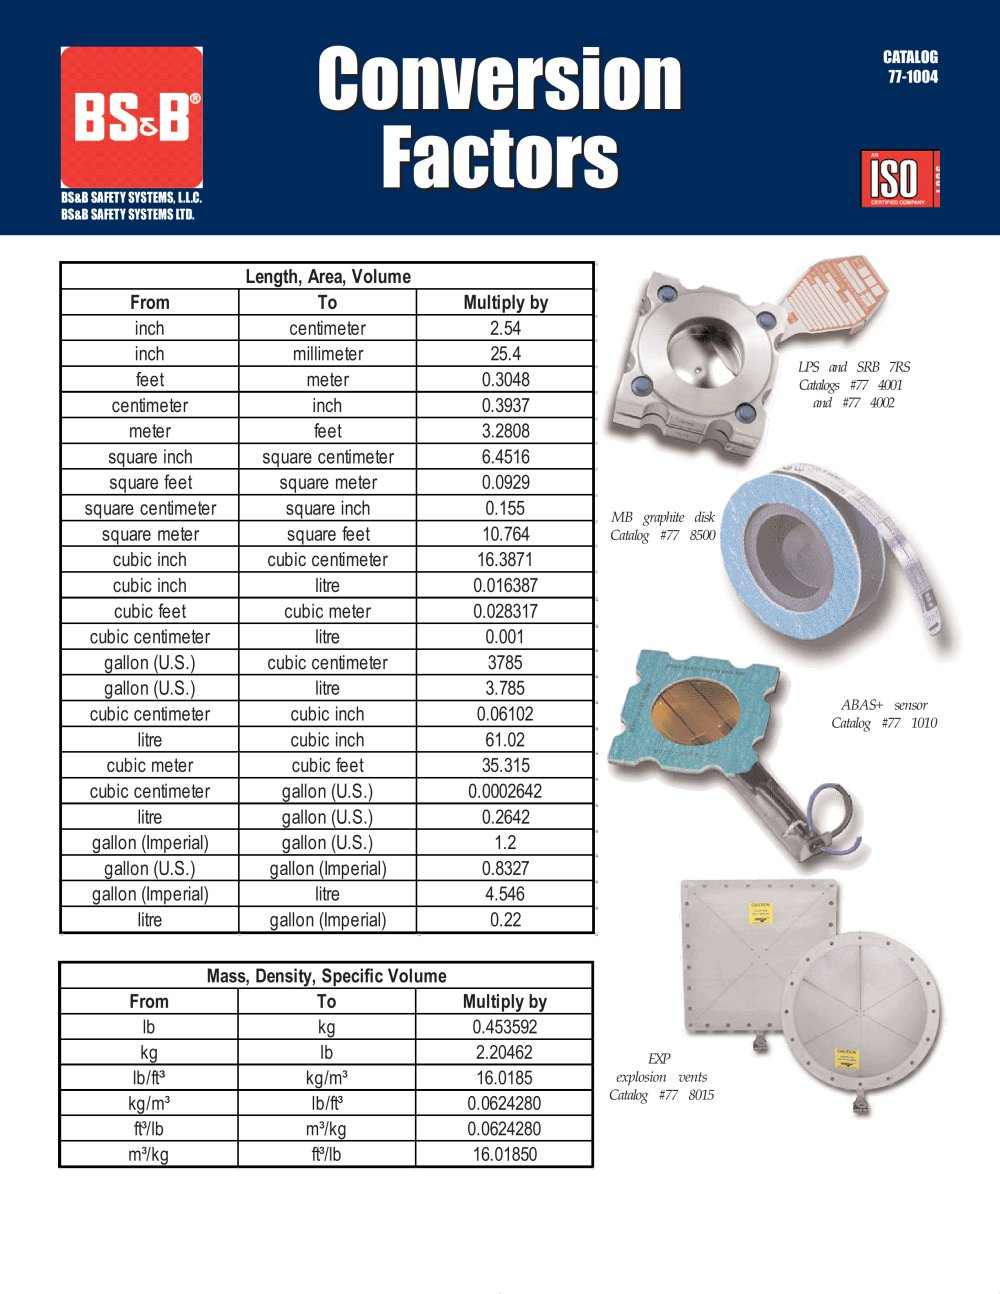 Conversion Factors Bsb Safety Systems Llc Pdf Catalogue